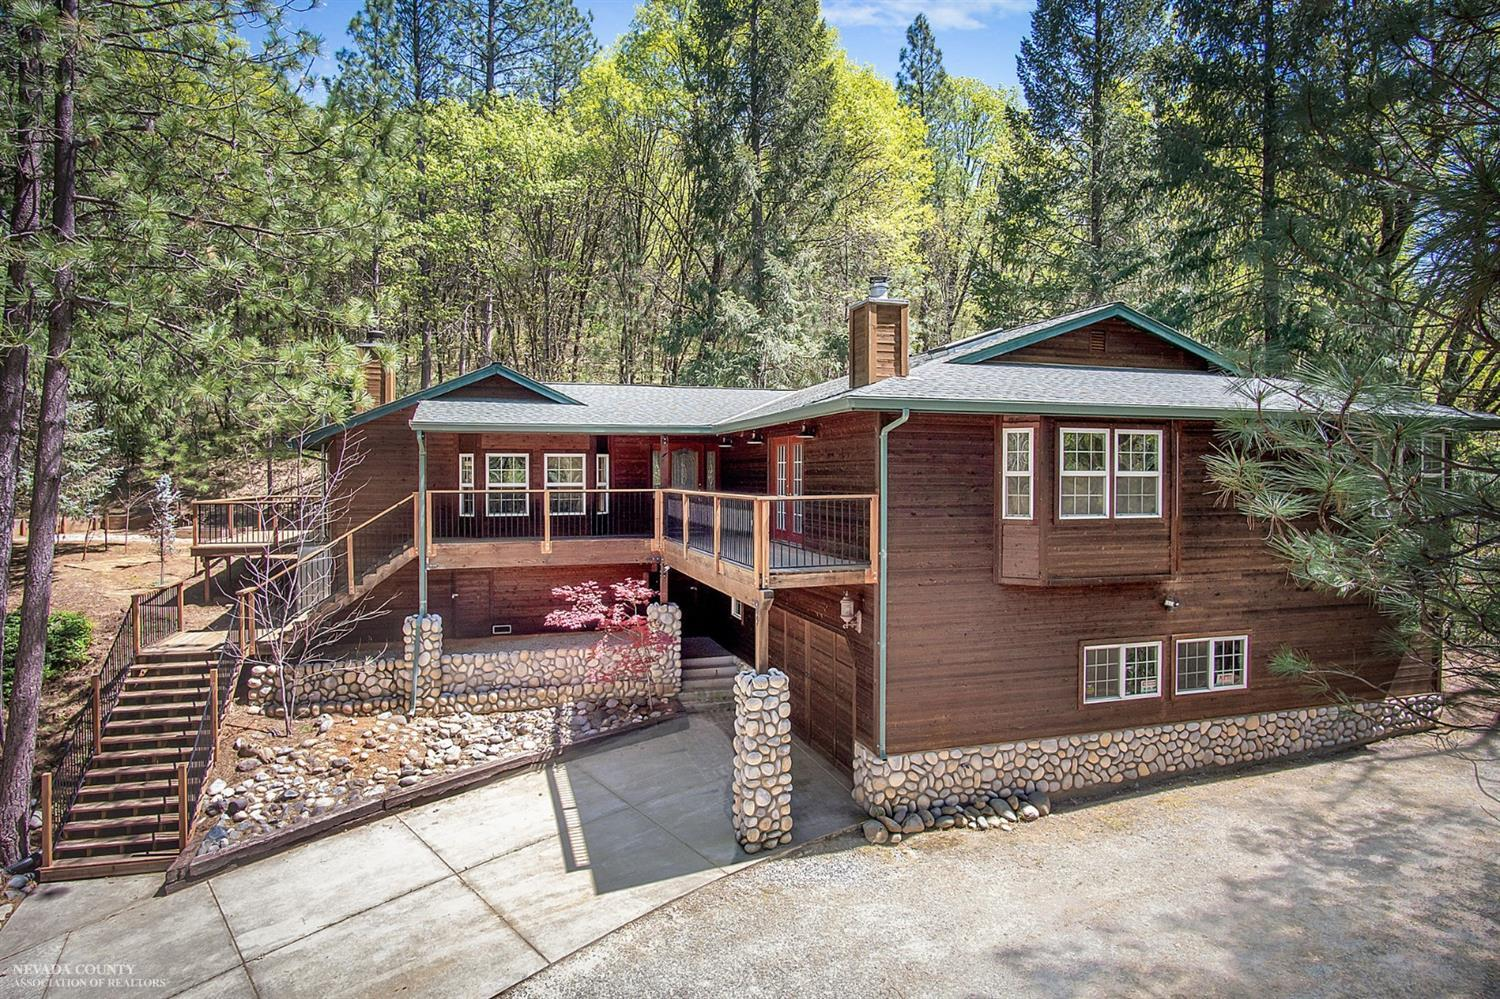 Single Family Home for sale in 16615 Auburn Rd, Grass Valley, California ,95949